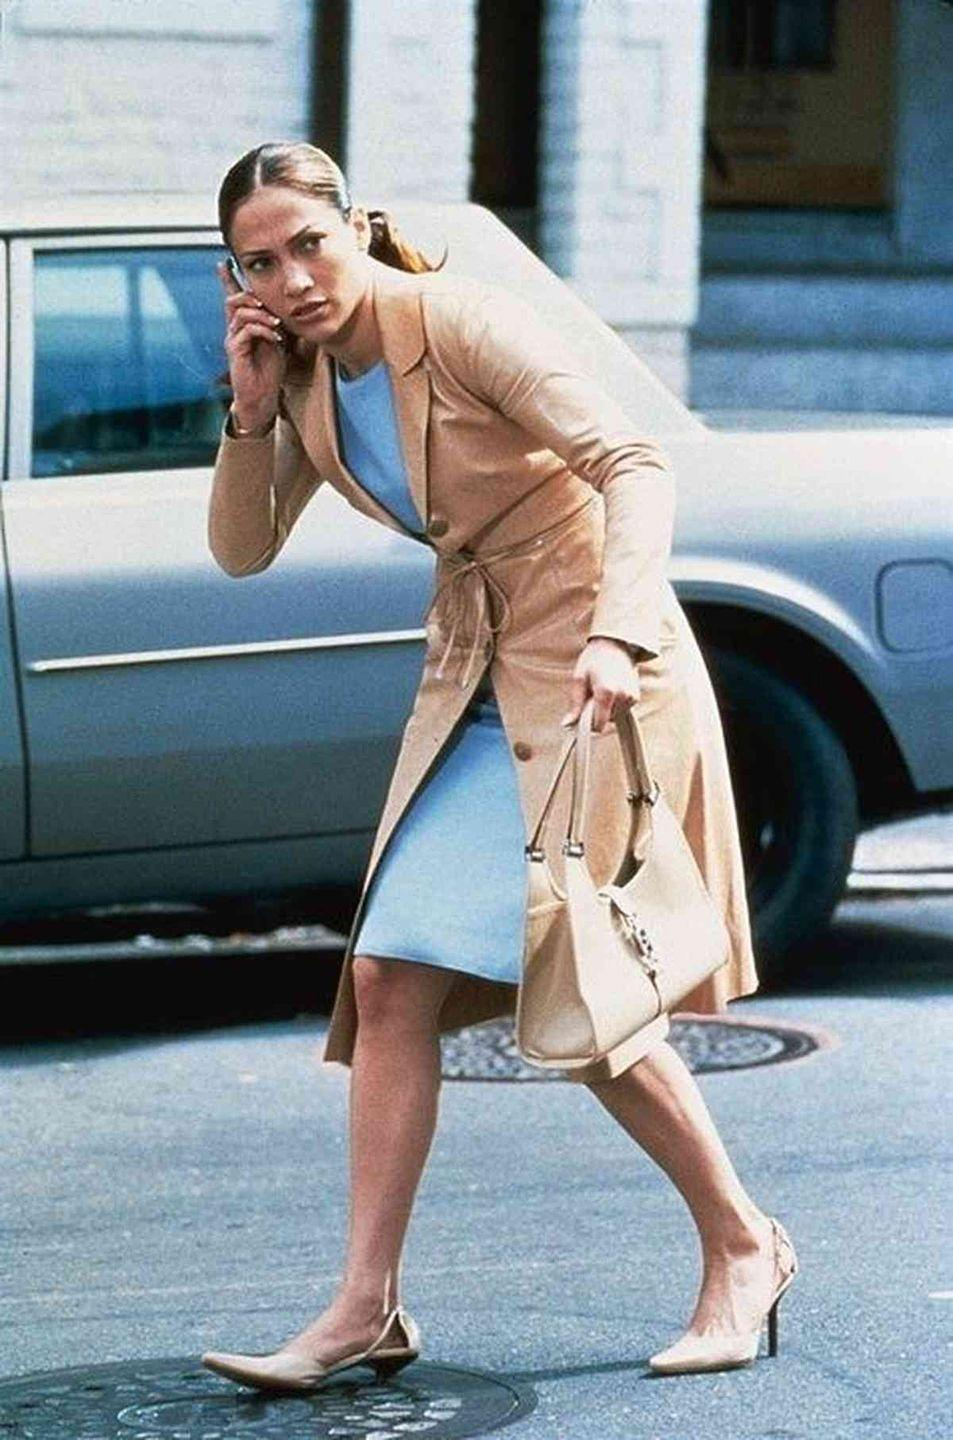 <p>Mary Fiore from <em>The Wedding Planner </em>almost met her fate when her new Gucci shoes got stuck in a manhole. Instead, they kicked off the plot of the entire movie.</p>